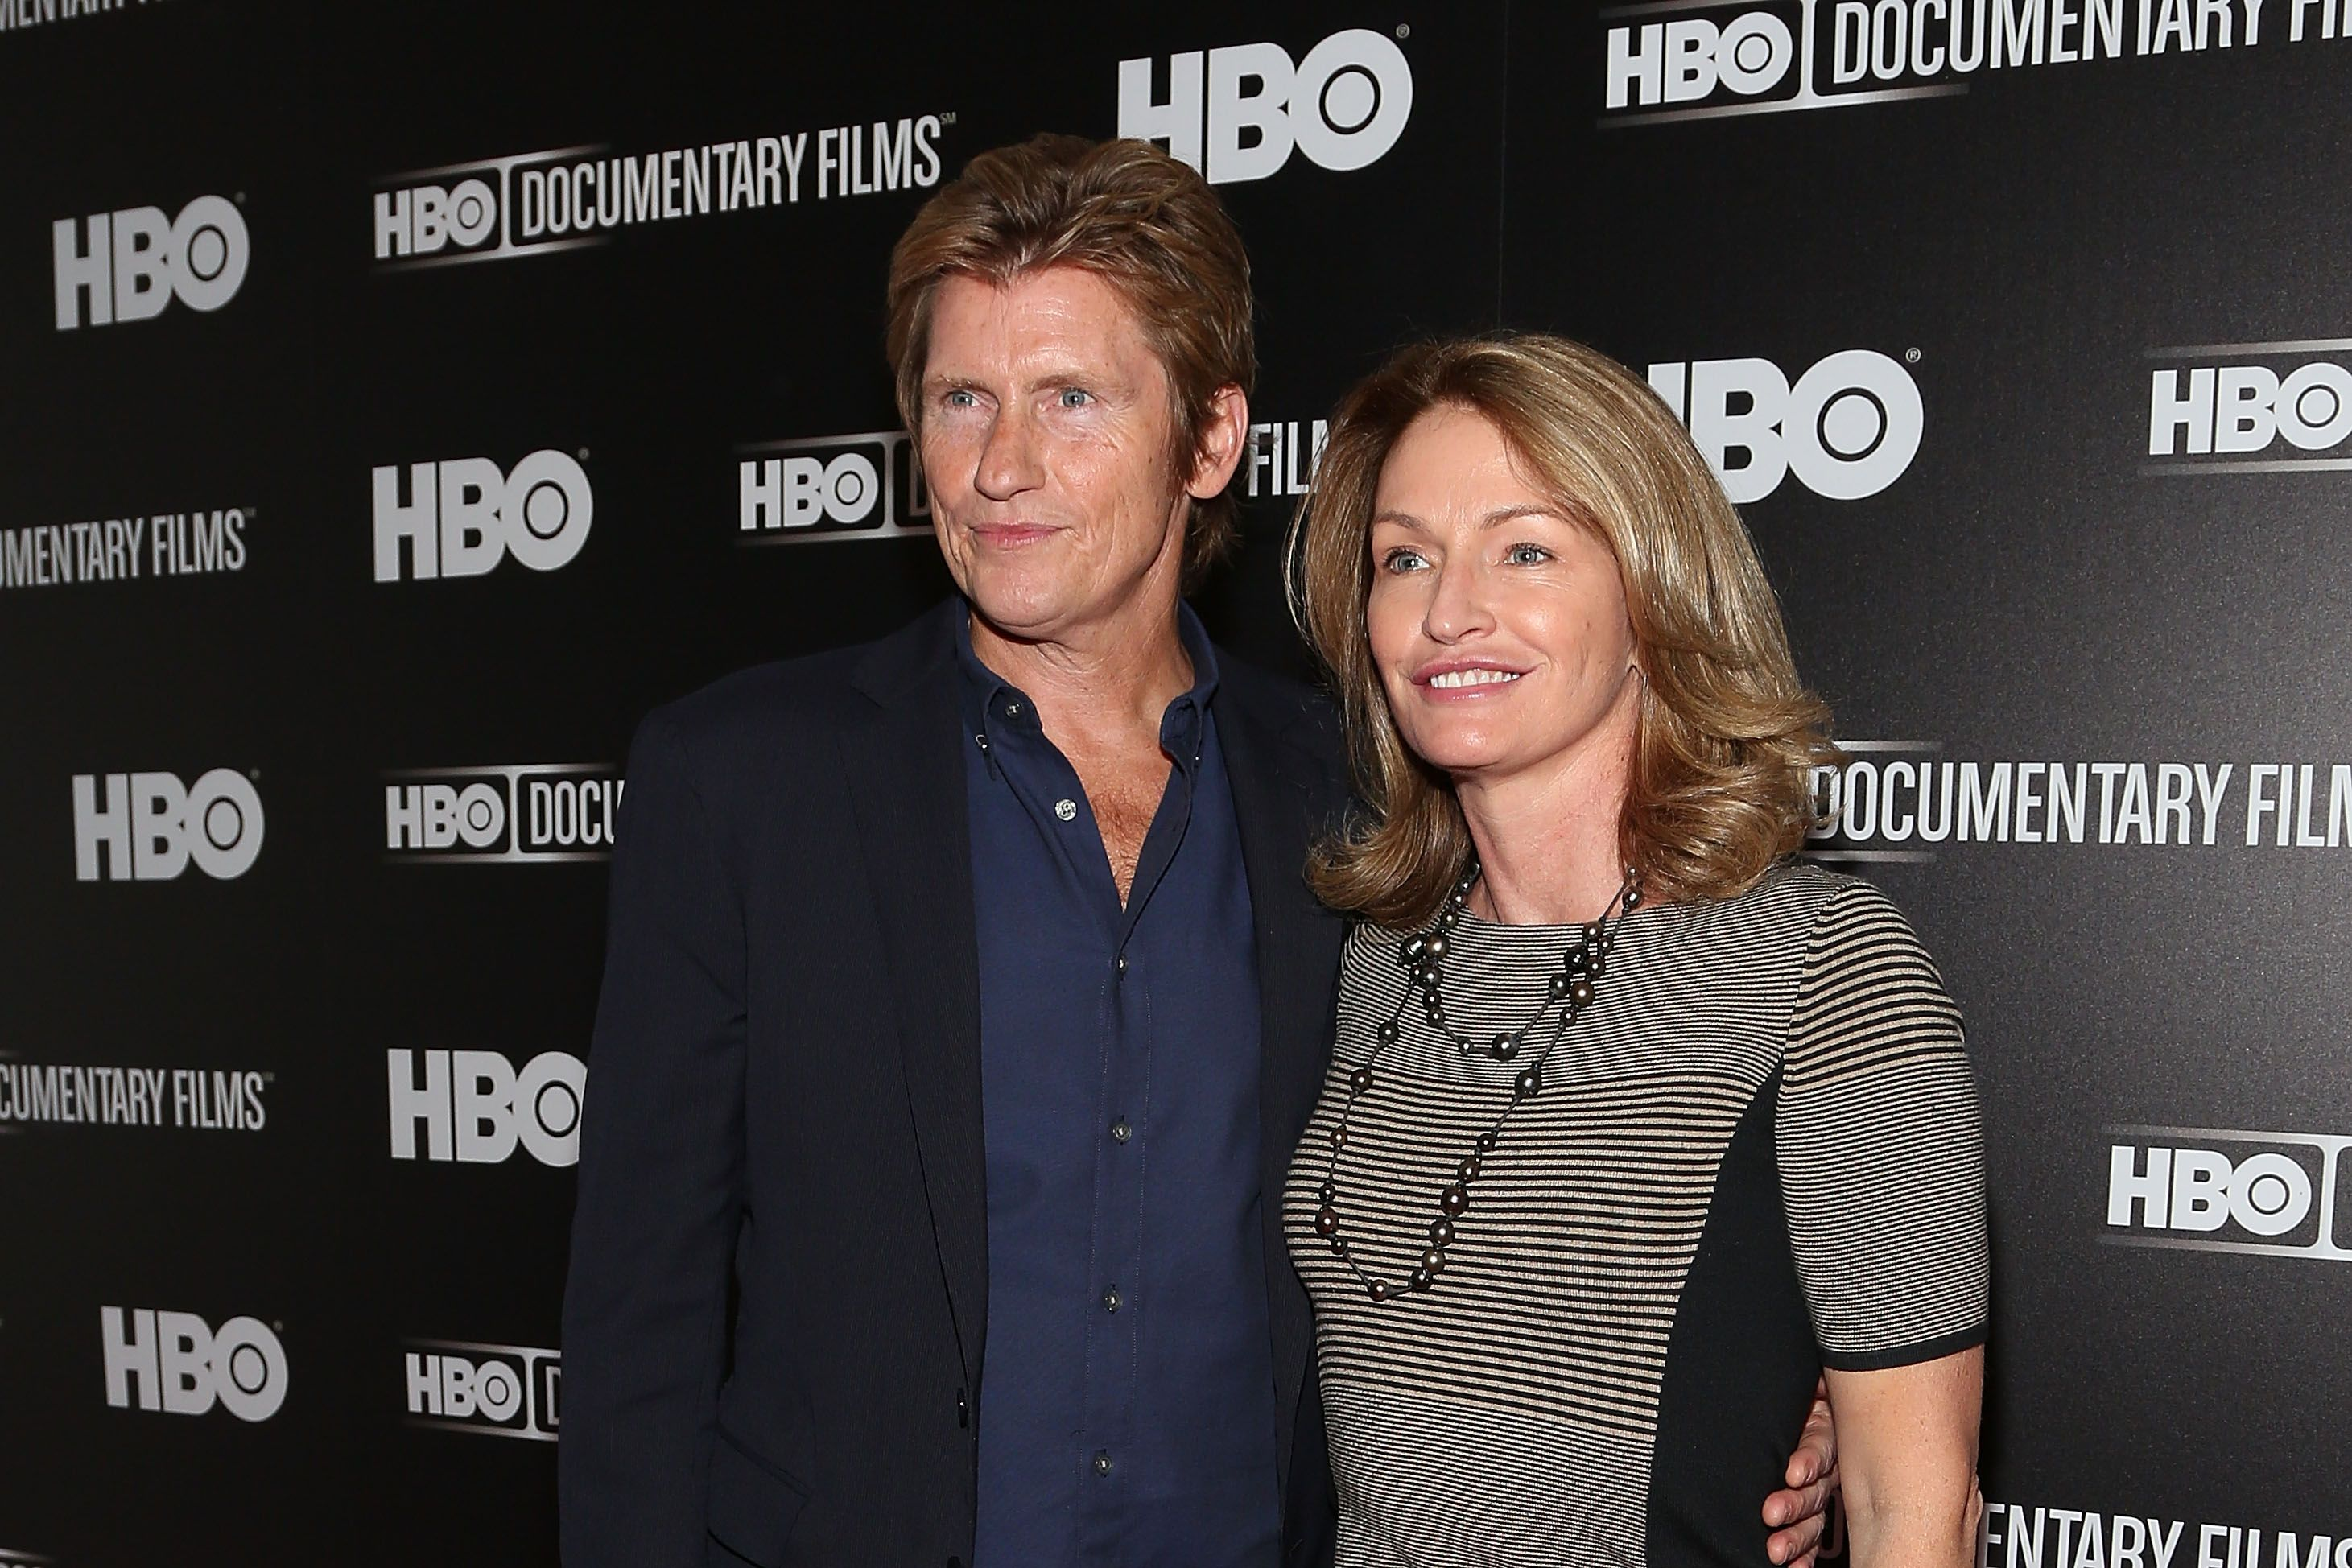 Denis Leary and Ann Lembeck  at Museum of Modern Art in 2014 in New York City | Source: Getty Images